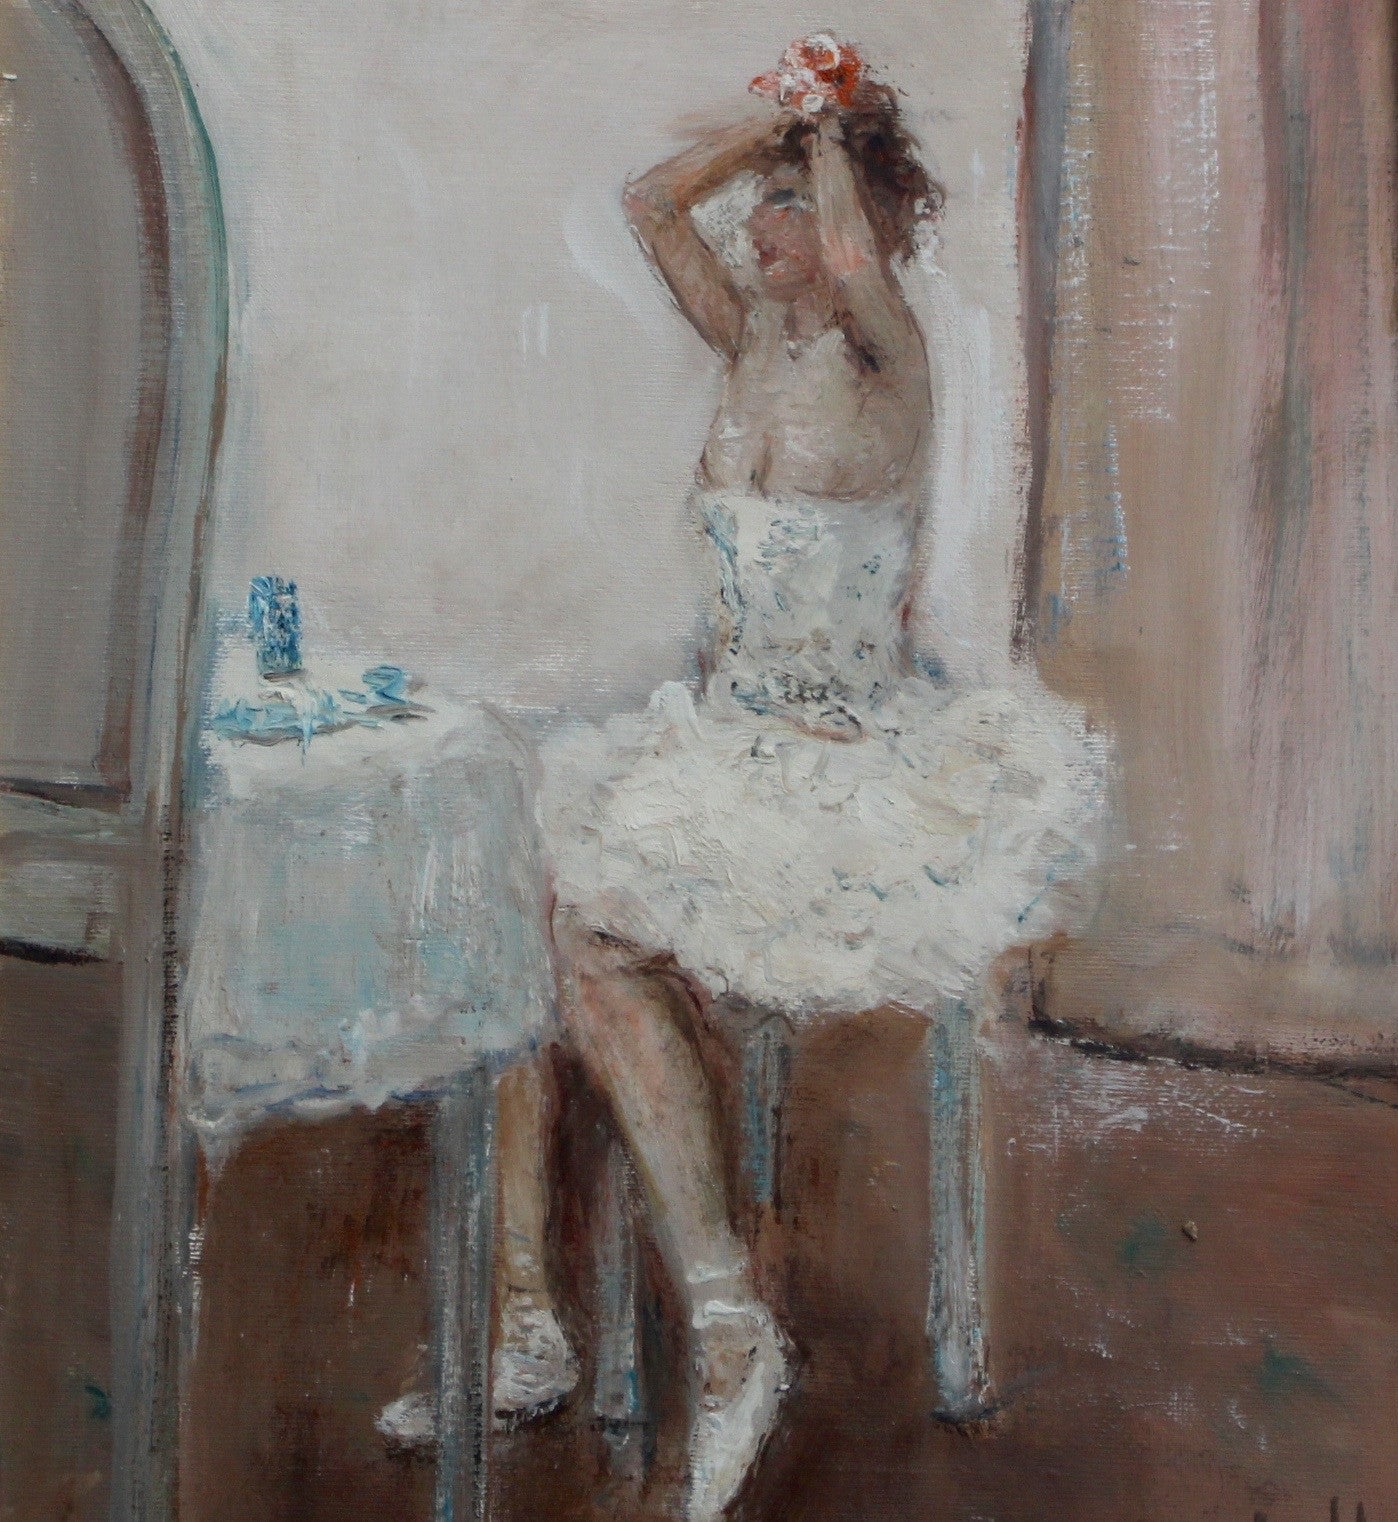 'The Mirror' by Gaetano Bocchetti (c. 1960s)